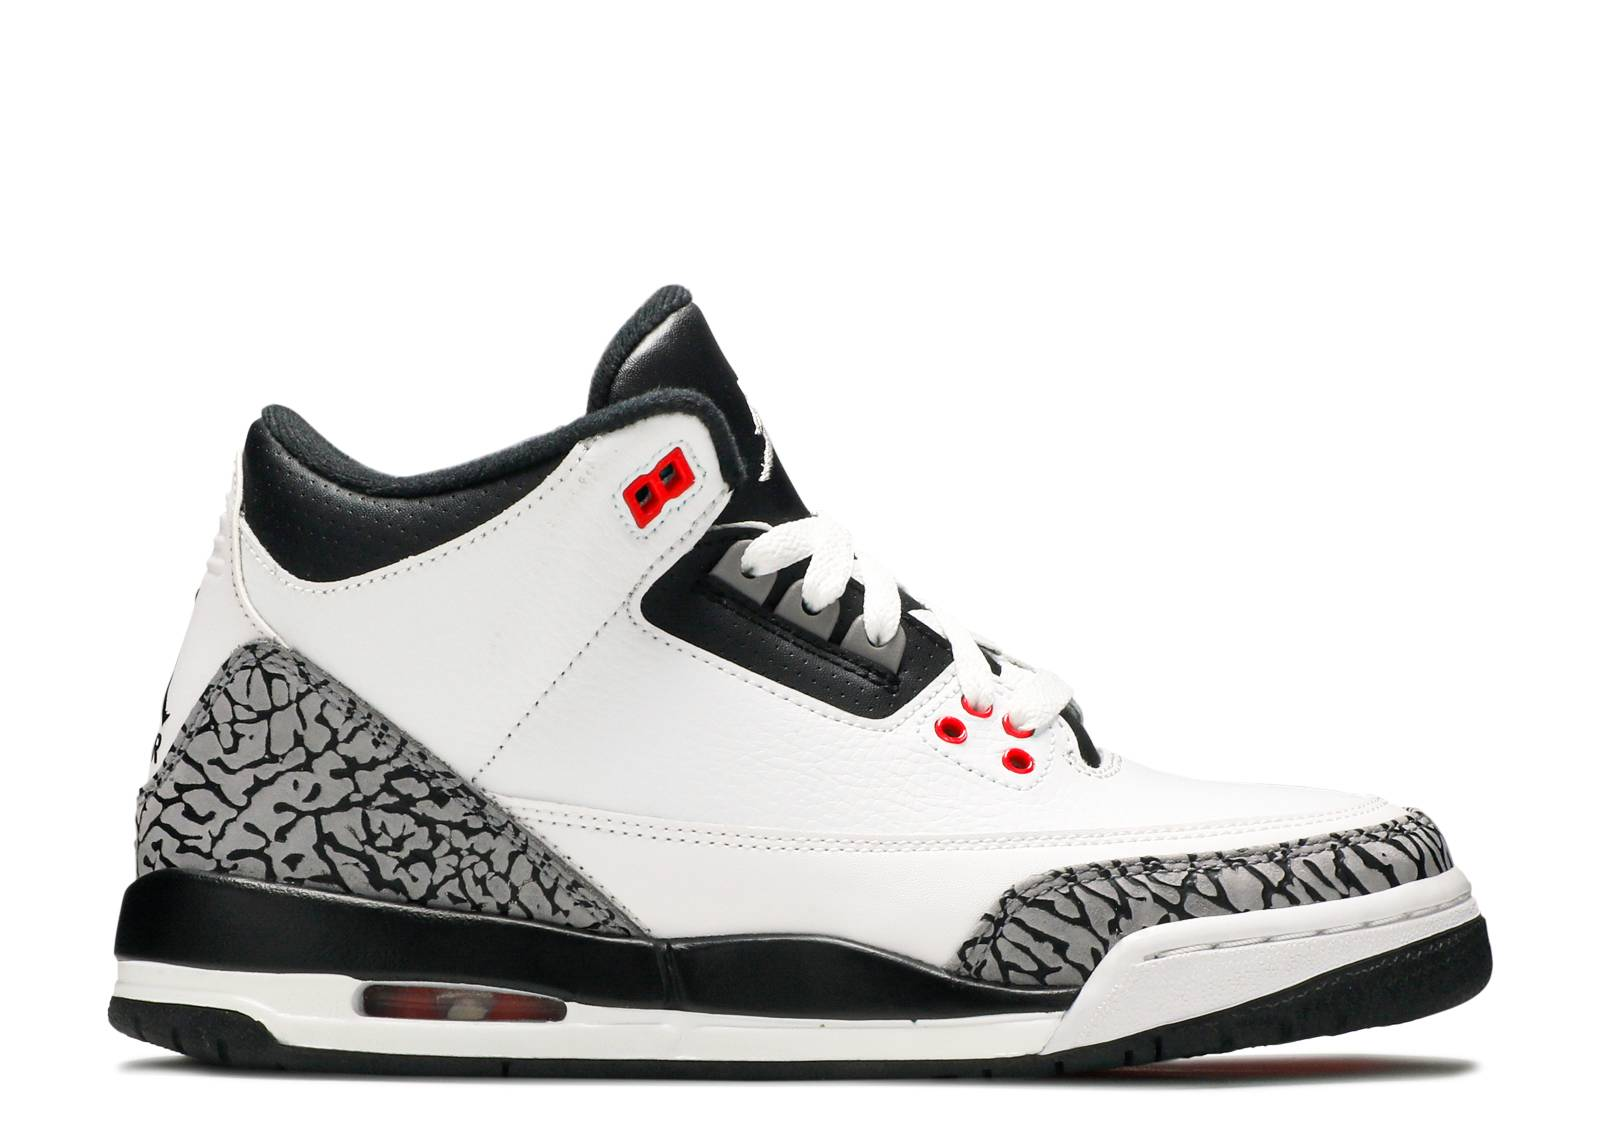 Air Jordan 3 Retro Bg  gs   infrared 23    Air Jordan   398614 123     air jordan 3 retro bg  gs   infrared 23